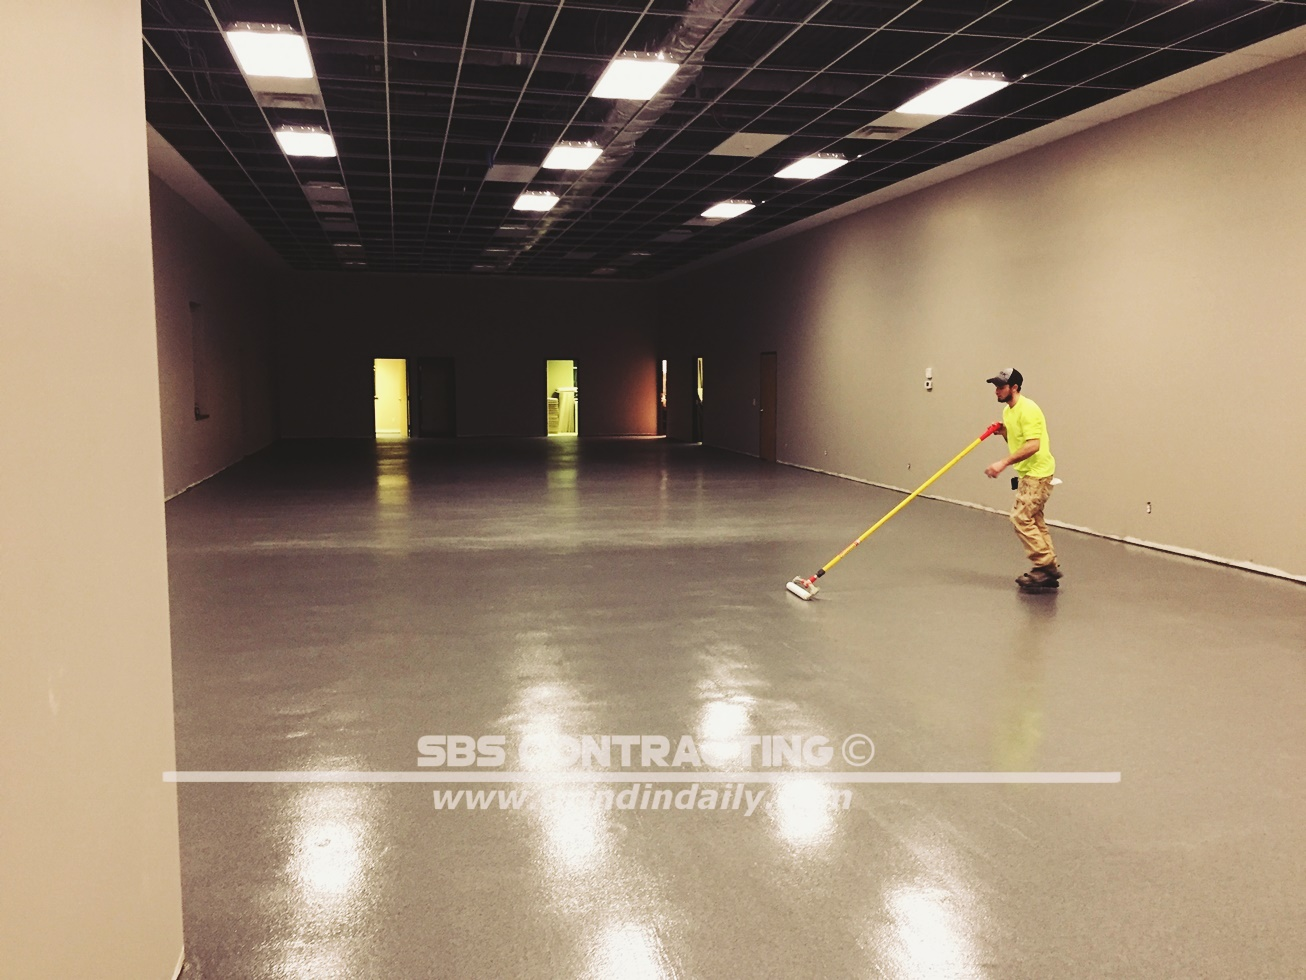 SBS-Contracting-Epoxy-Project-10-07